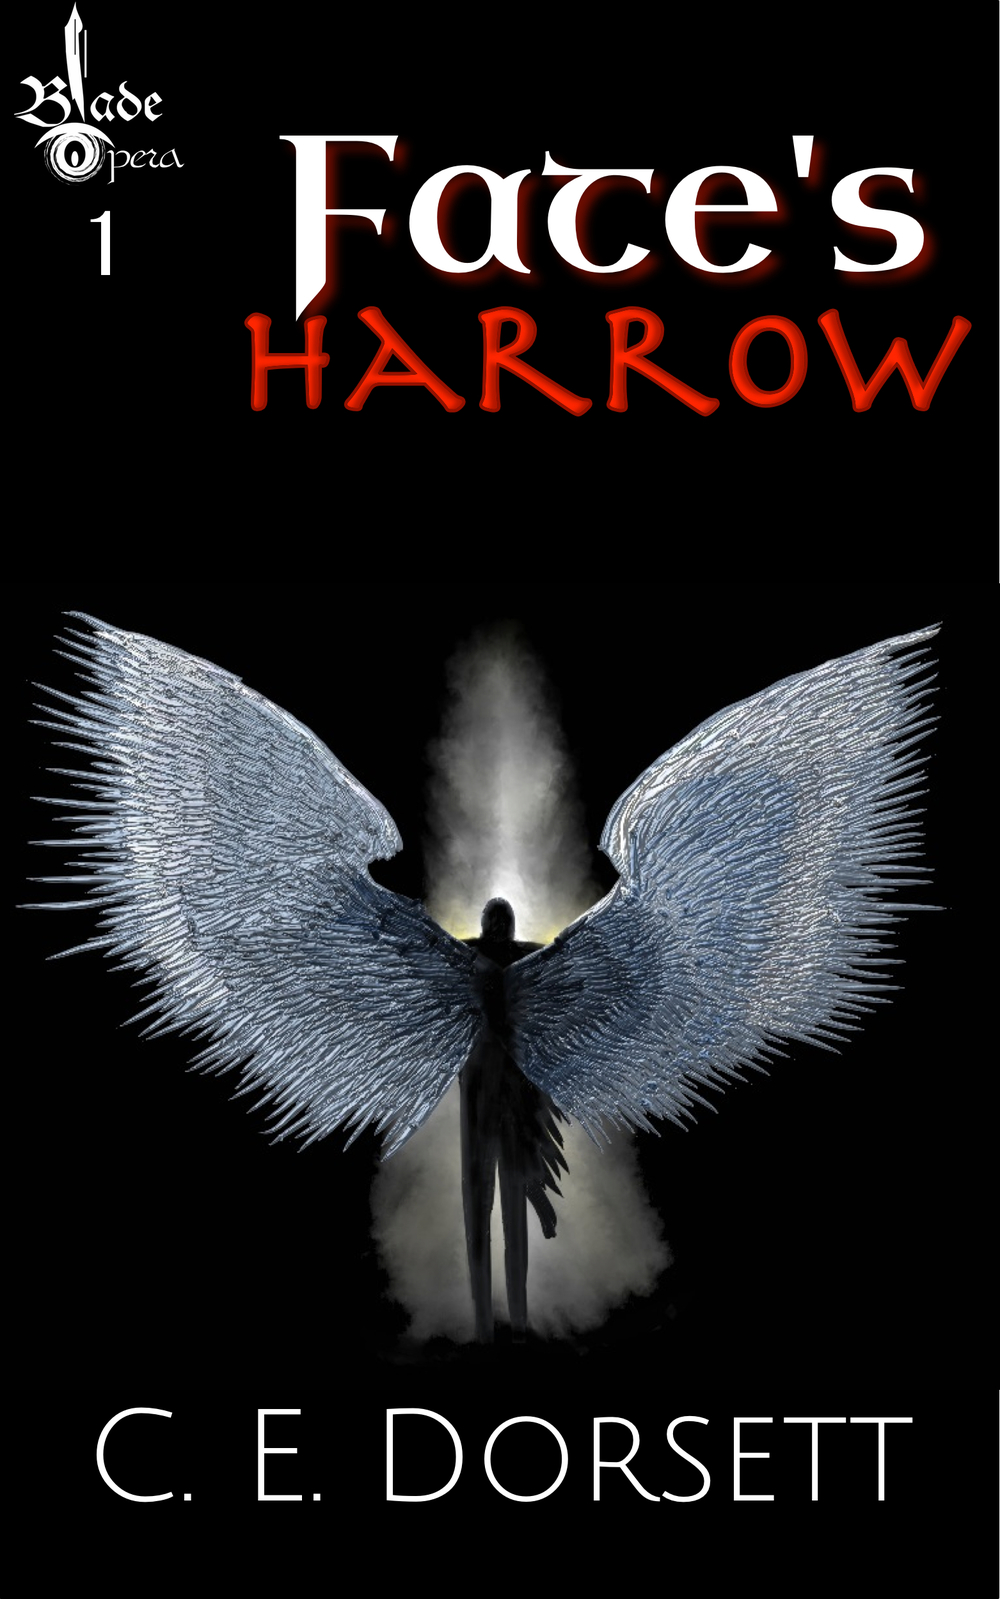 Fate's-Harrow-Cover-1.jpg